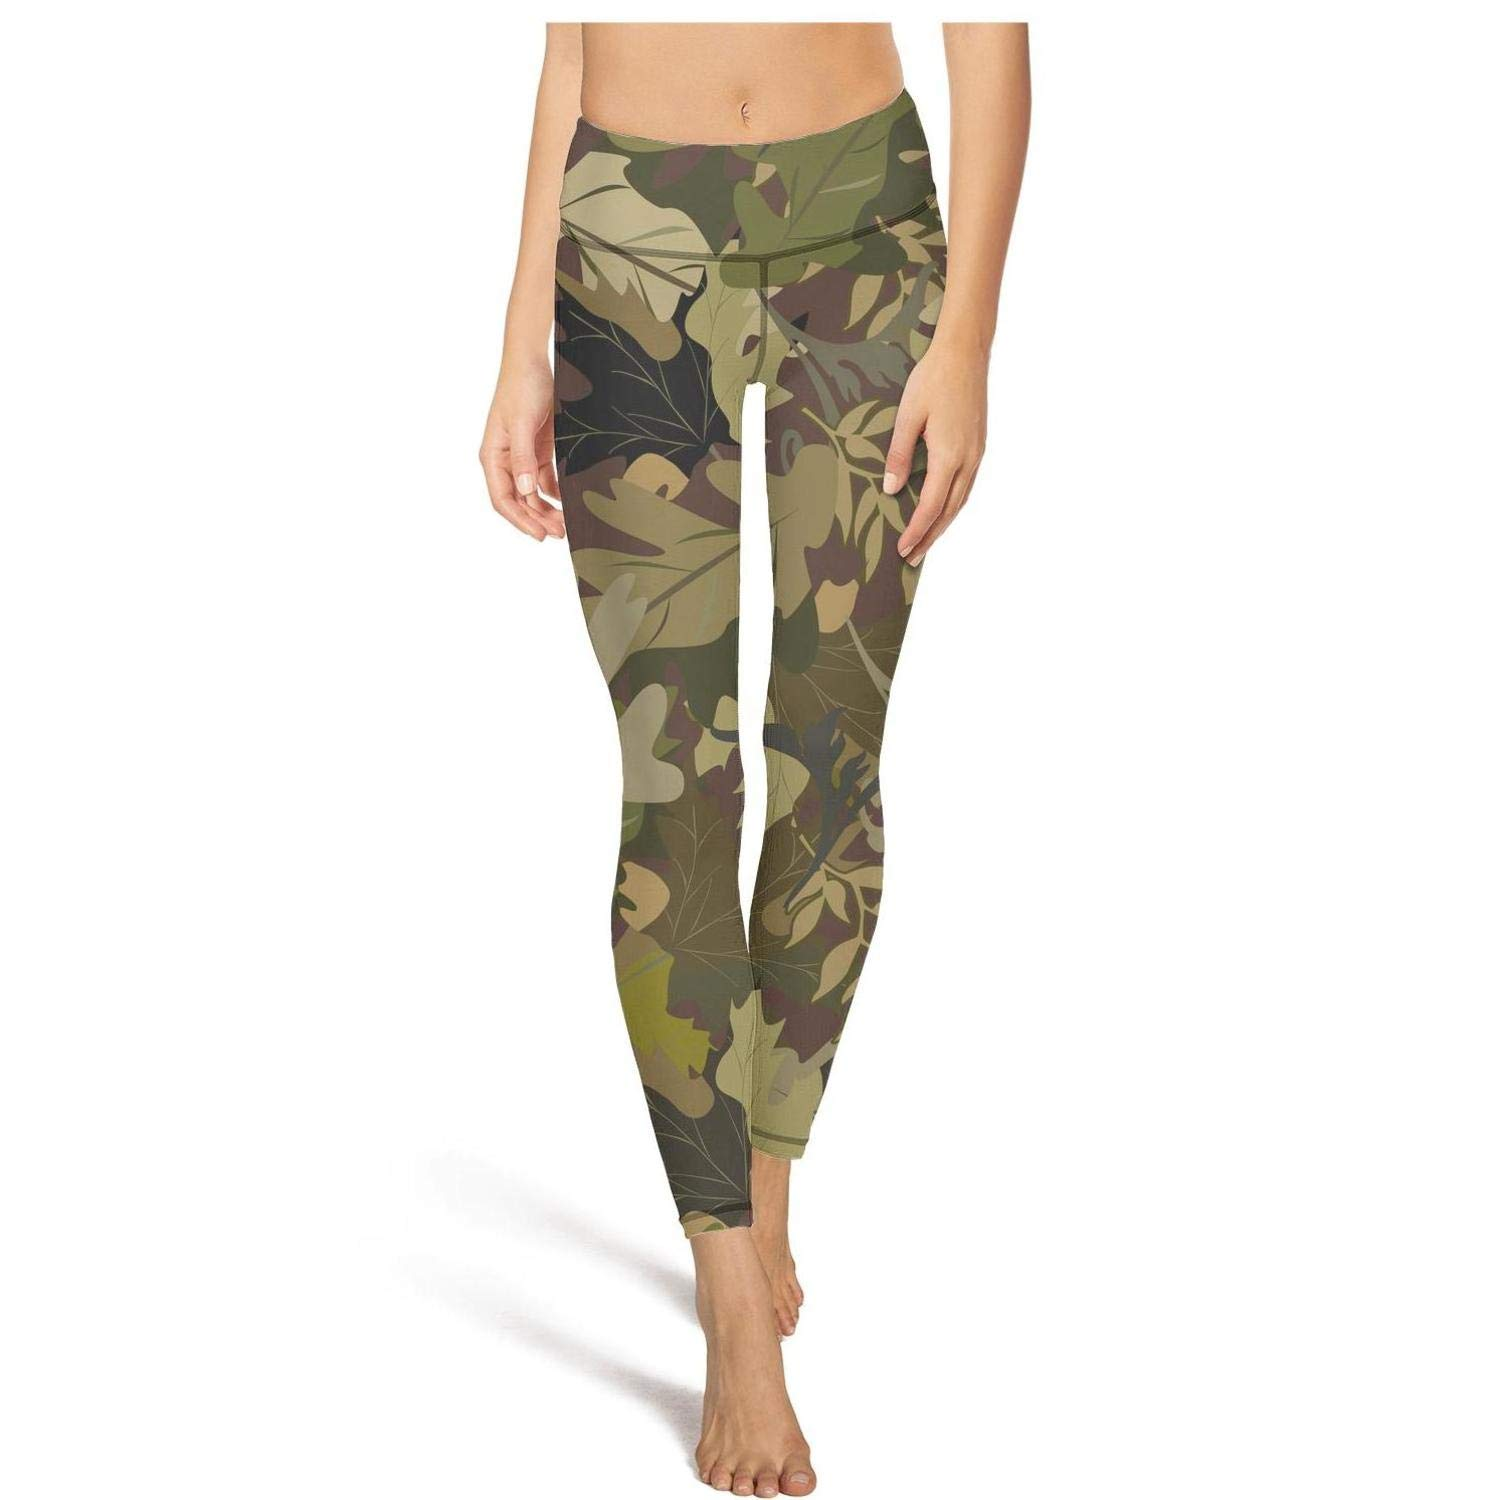 MollyWord Military Camo Camouflage Texture Workout Running Leggins for Women Tummy Control Essential Yoga Pants with Pockets